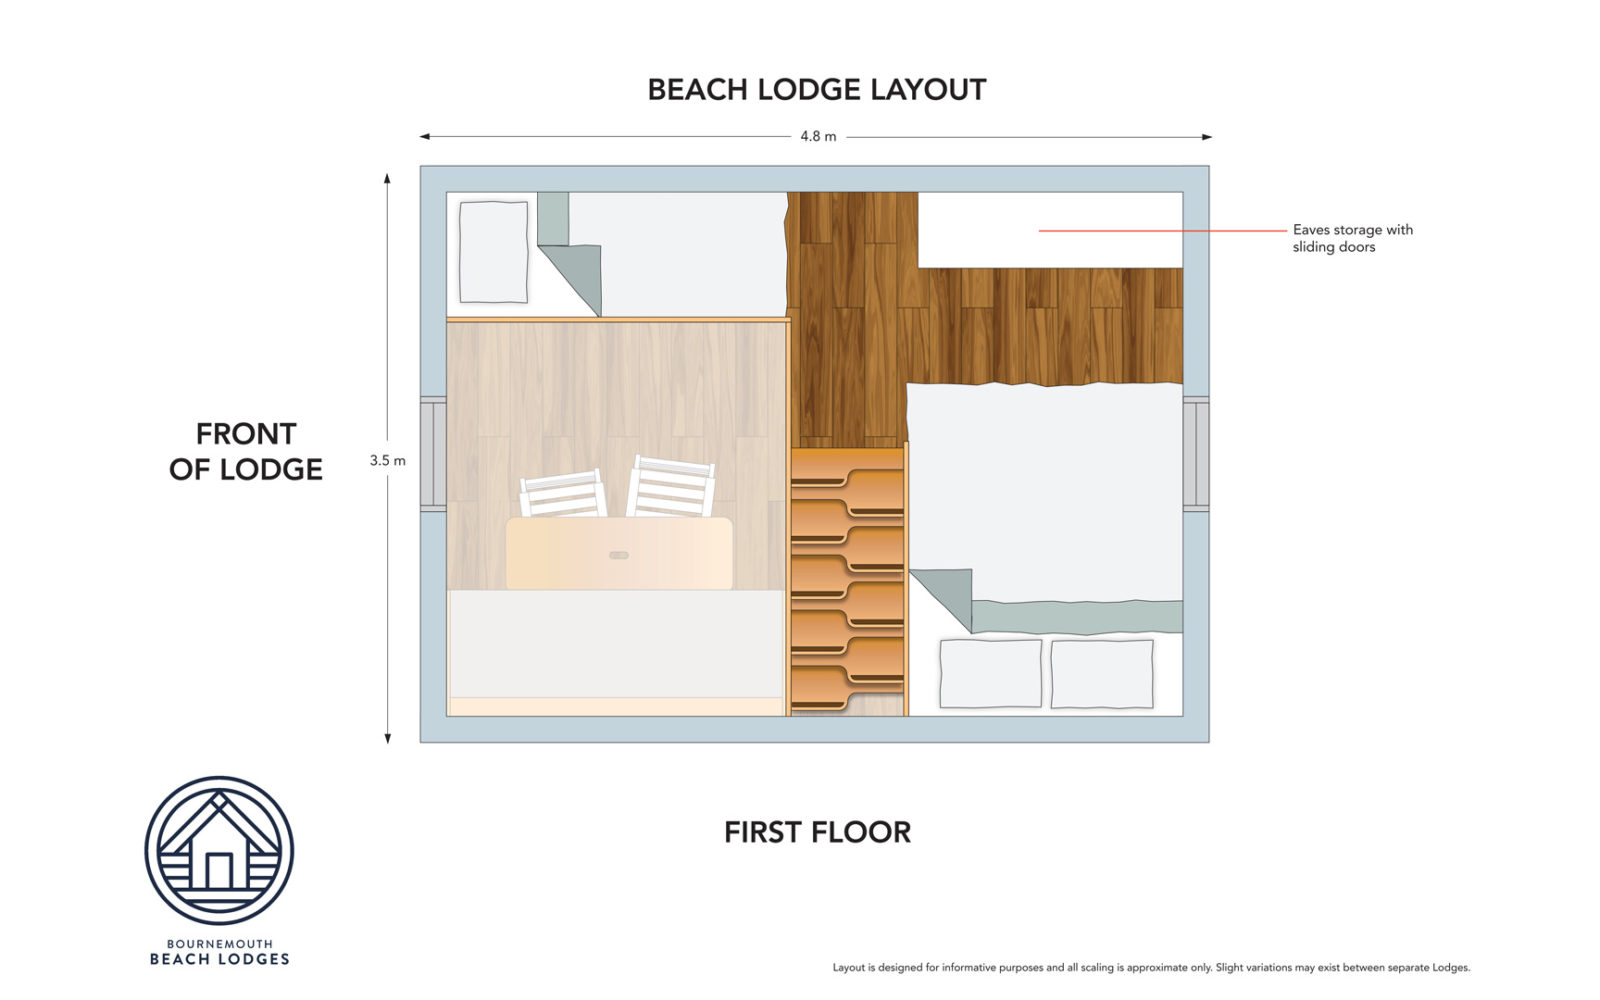 First floor plan of the beach lodges in Bournemouth